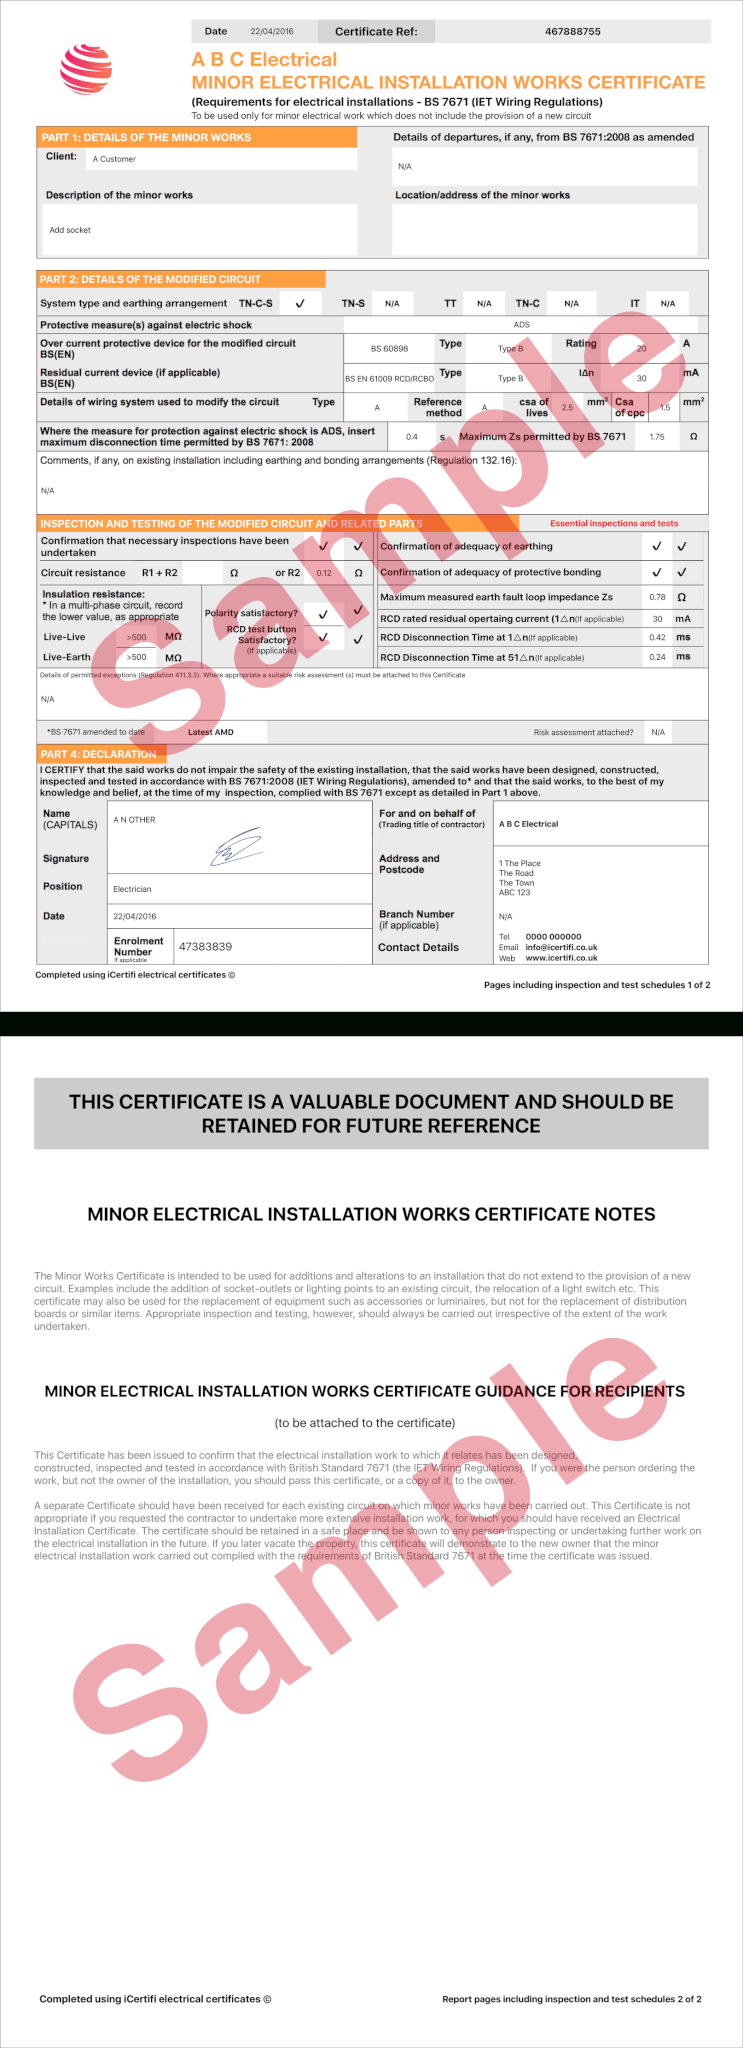 Electrical Certificate - Example Minor Works Certificate Throughout Minor Electrical Installation Works Certificate Template